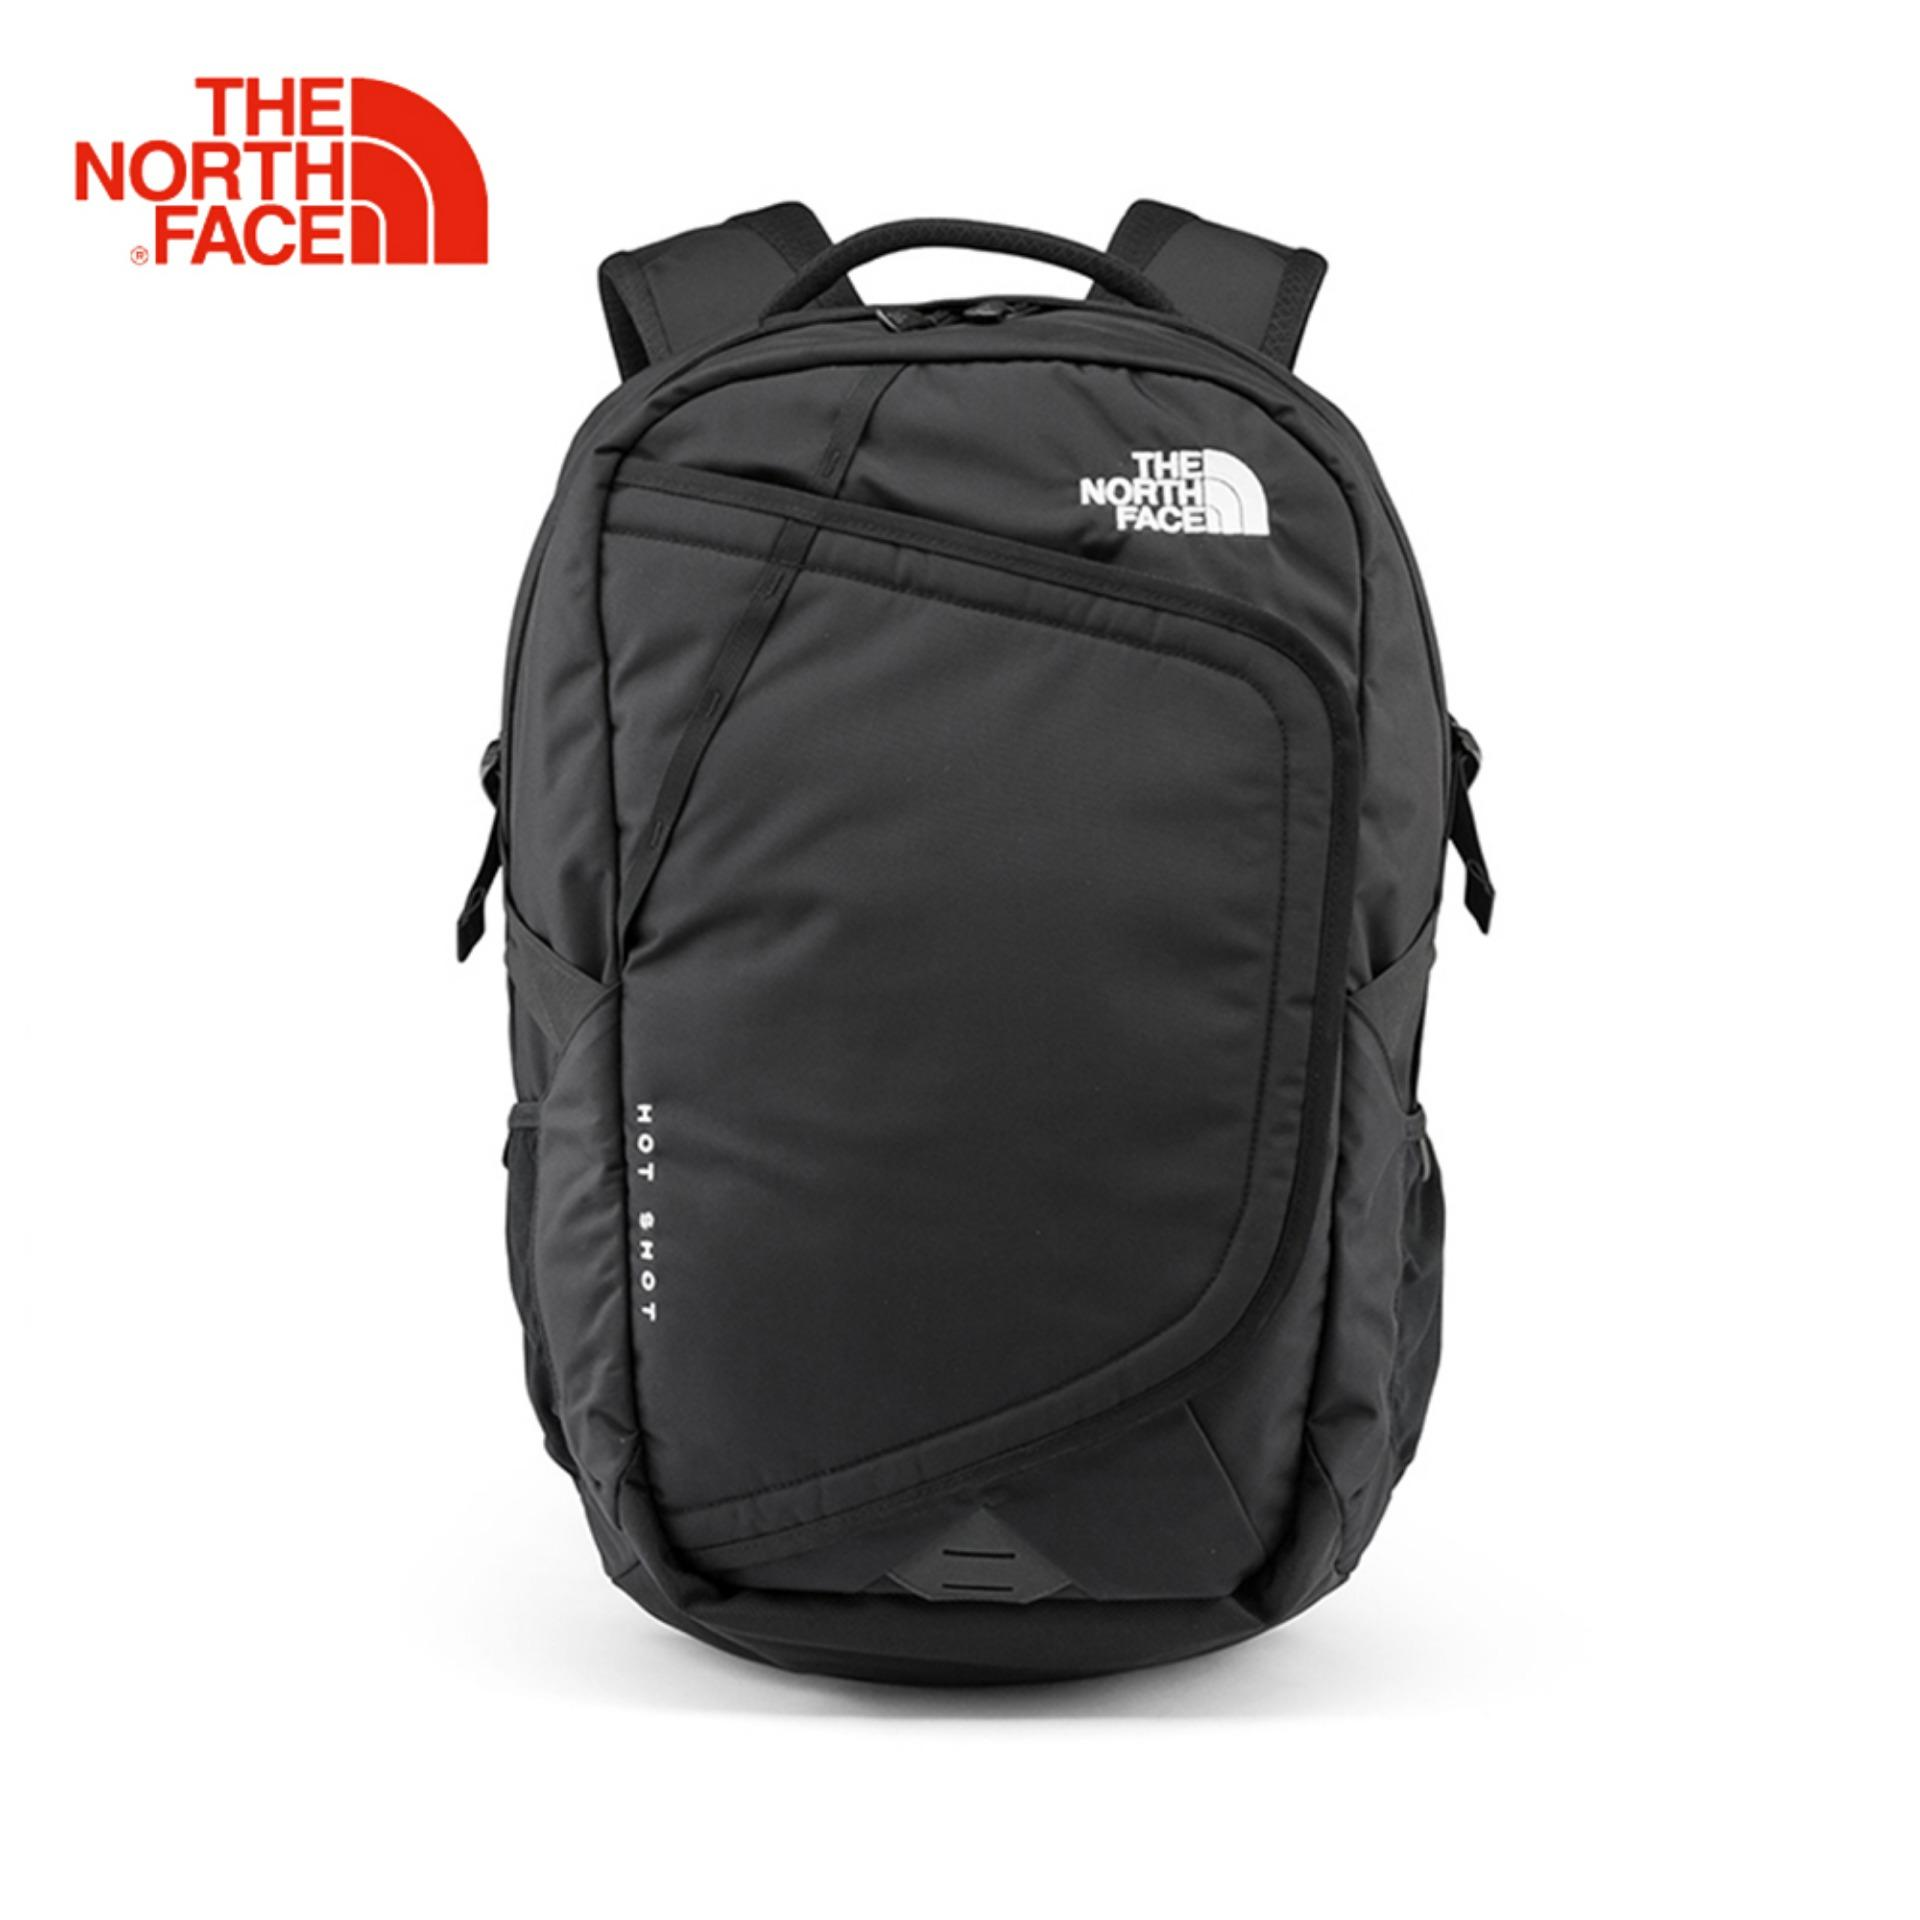 03145b484 The North Face Hot Shot FlexVent™ Comfortable Padded Reflective Laptop  Tablet Backpack